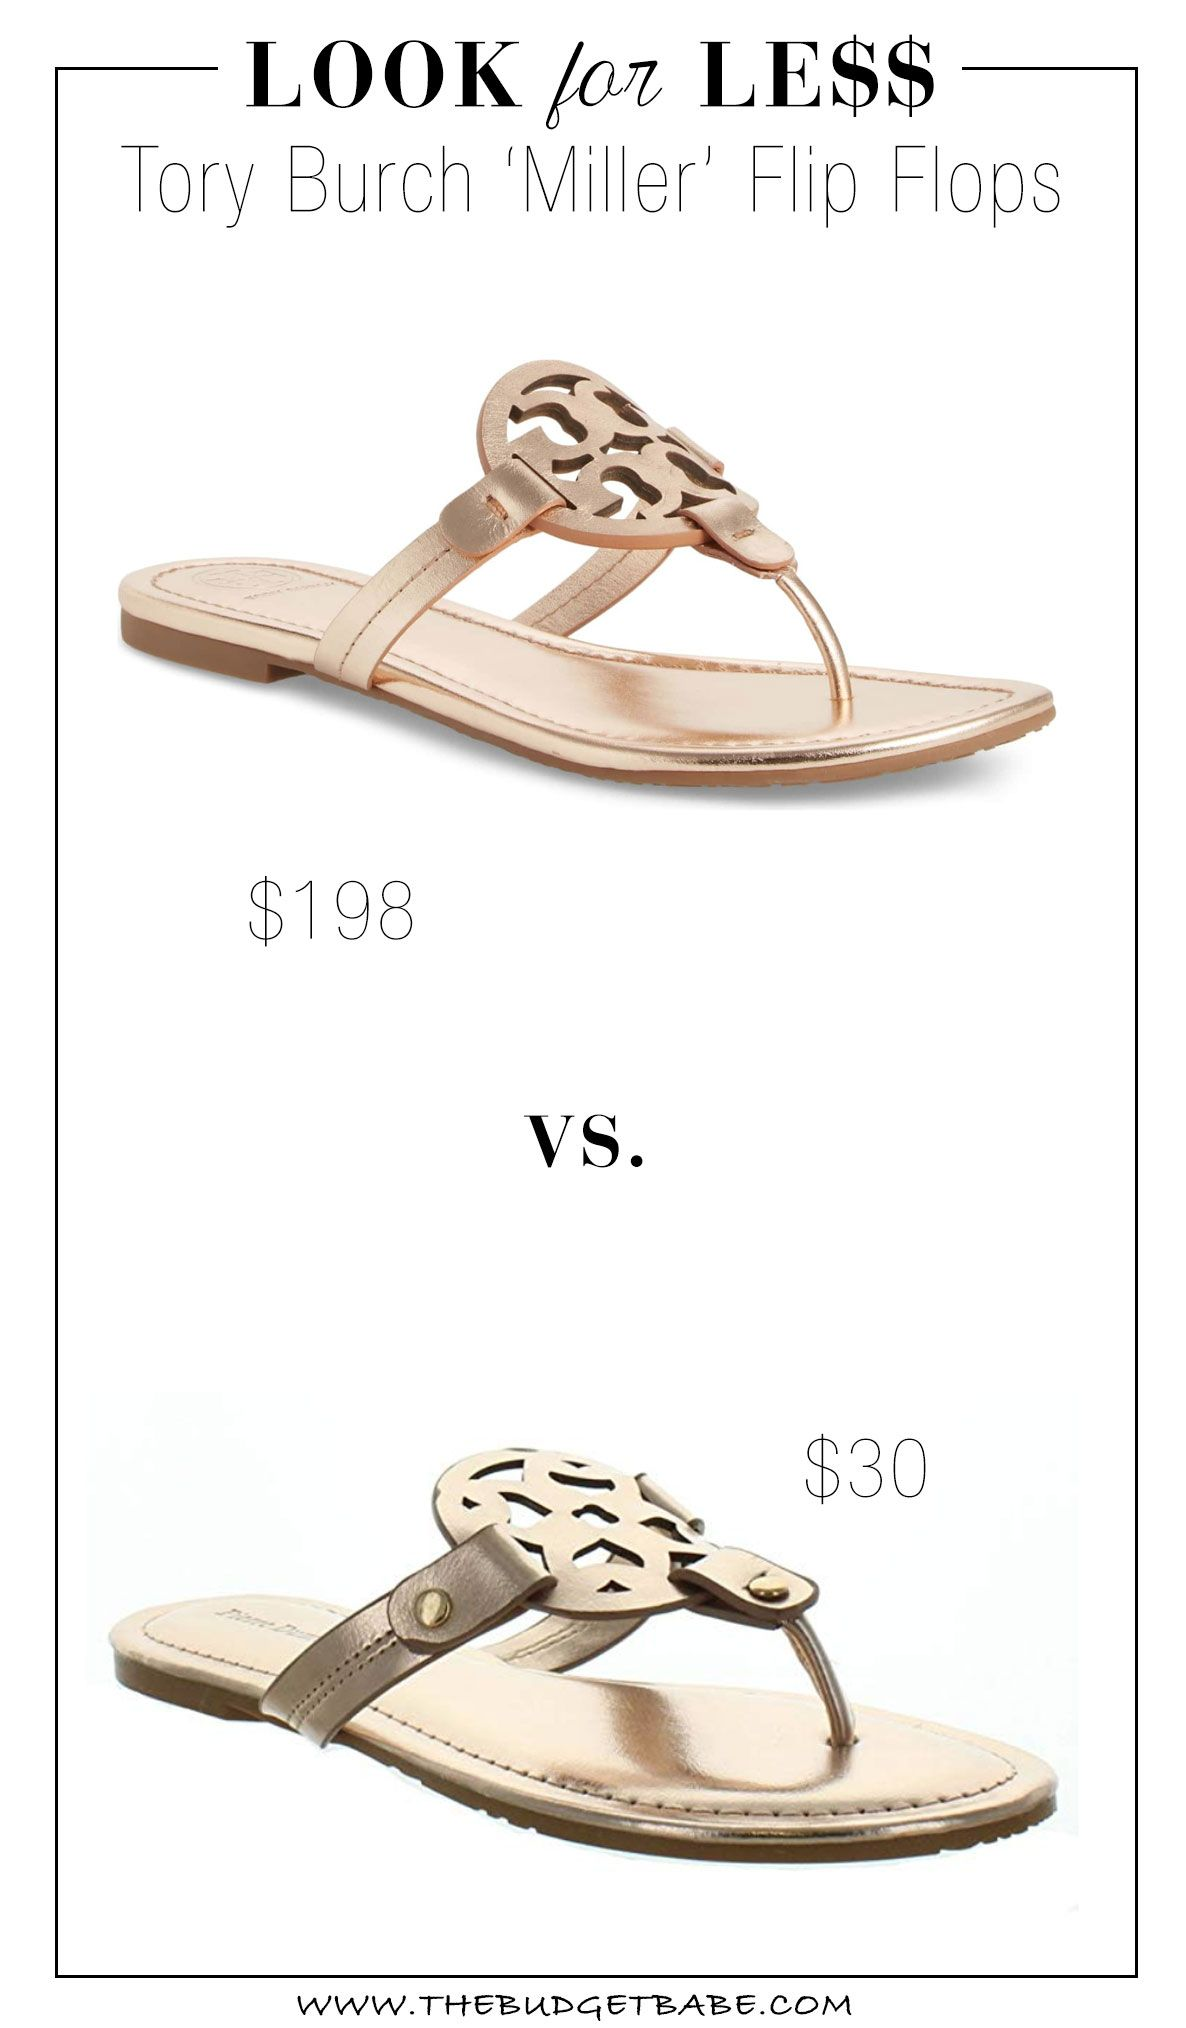 57cad2a37e Look for Less: Tory Burch 'Miller' Flip Flops | The Look for Less ...